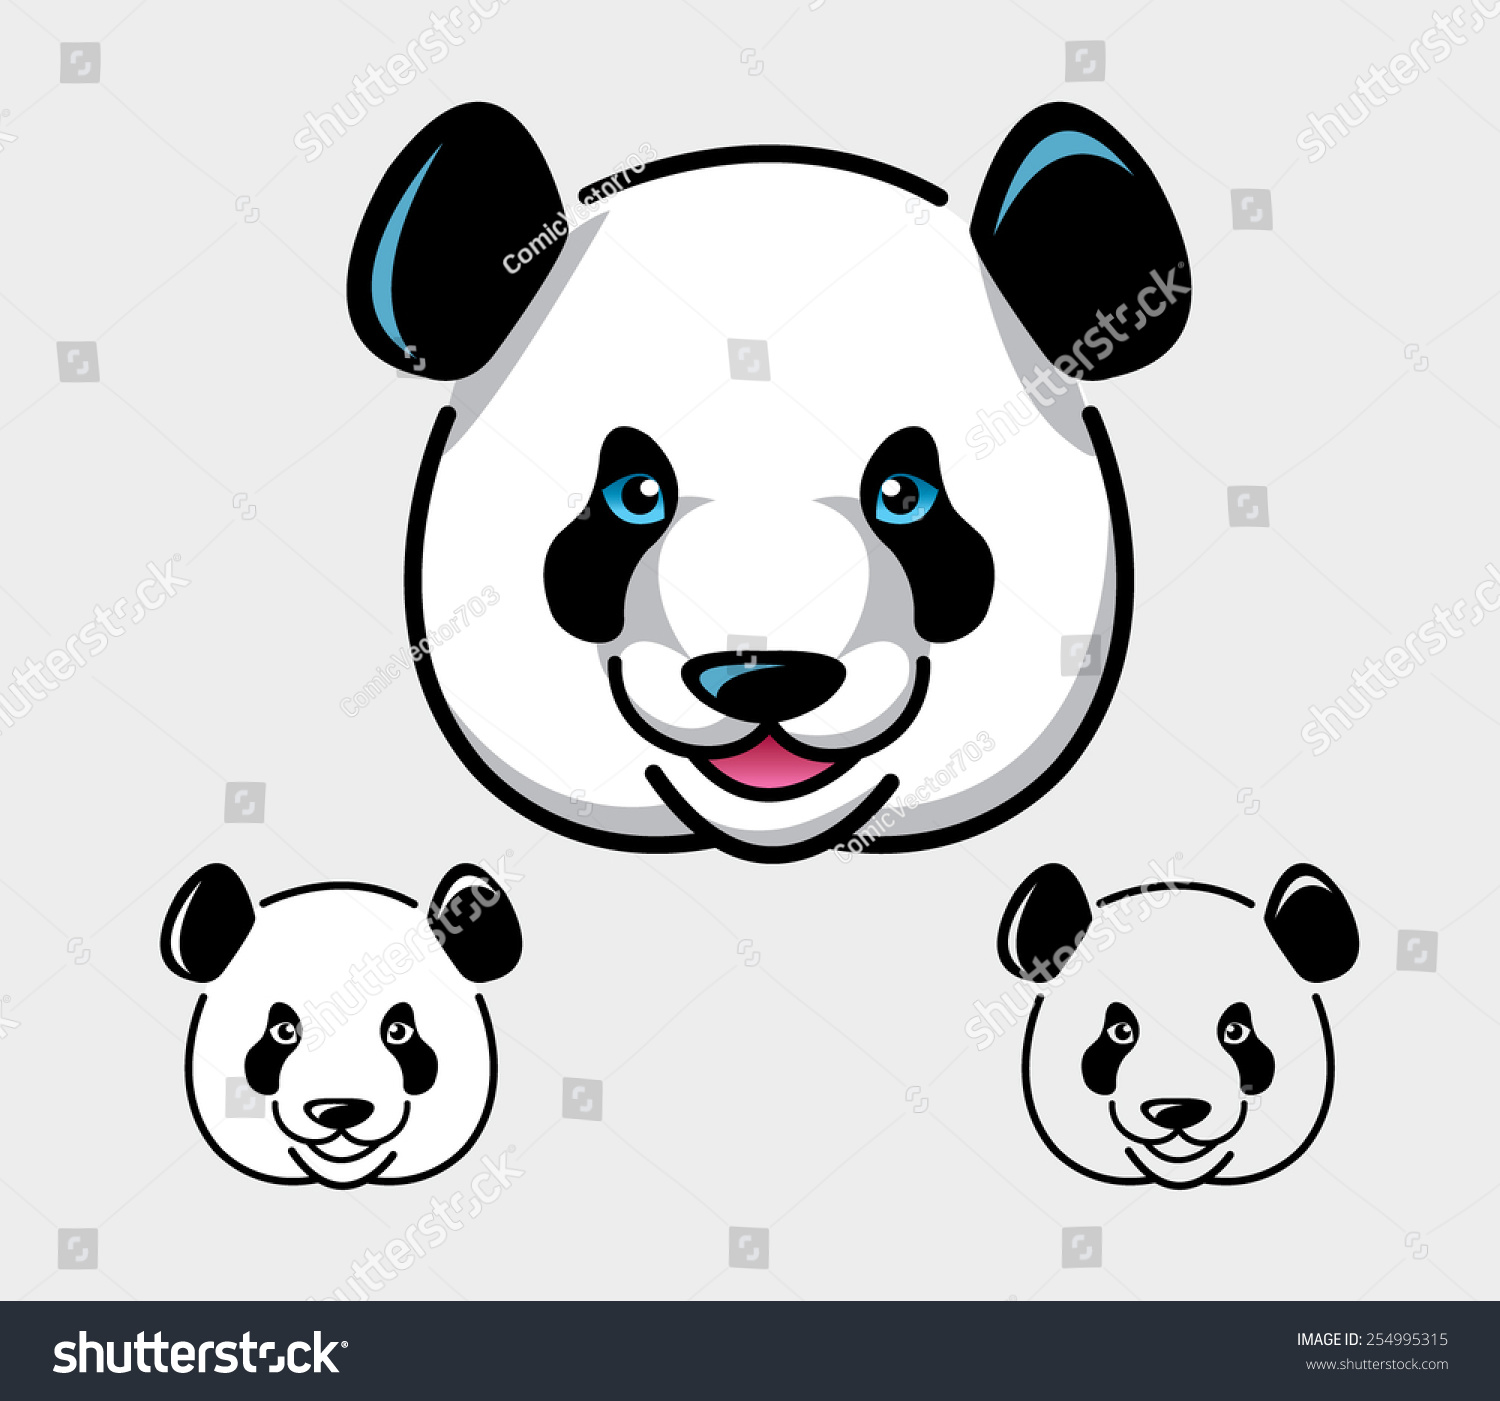 0860c454327 Panda face vector illustration. Good use for symbol, icon, mascot, or any  design you want. Easy to use, edit, or change color.